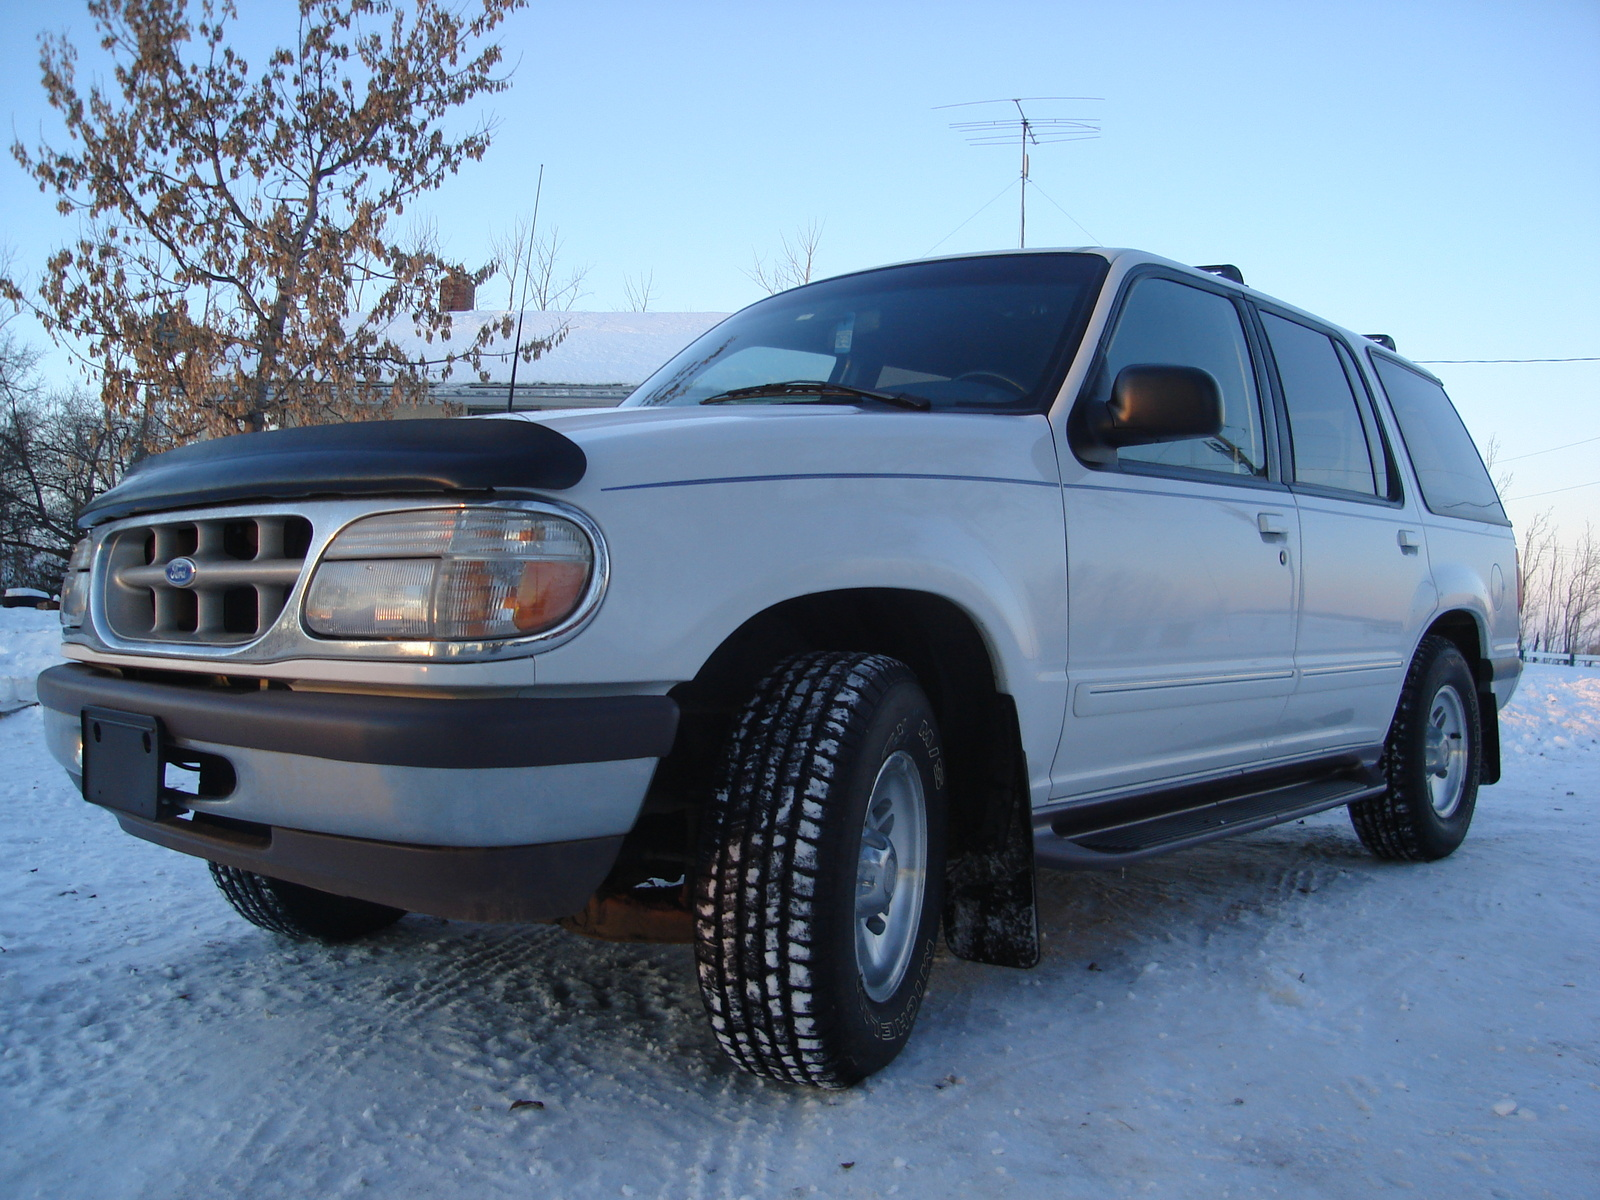 Picture of 1995 Ford Explorer 4 Dr XLT 4WD SUV